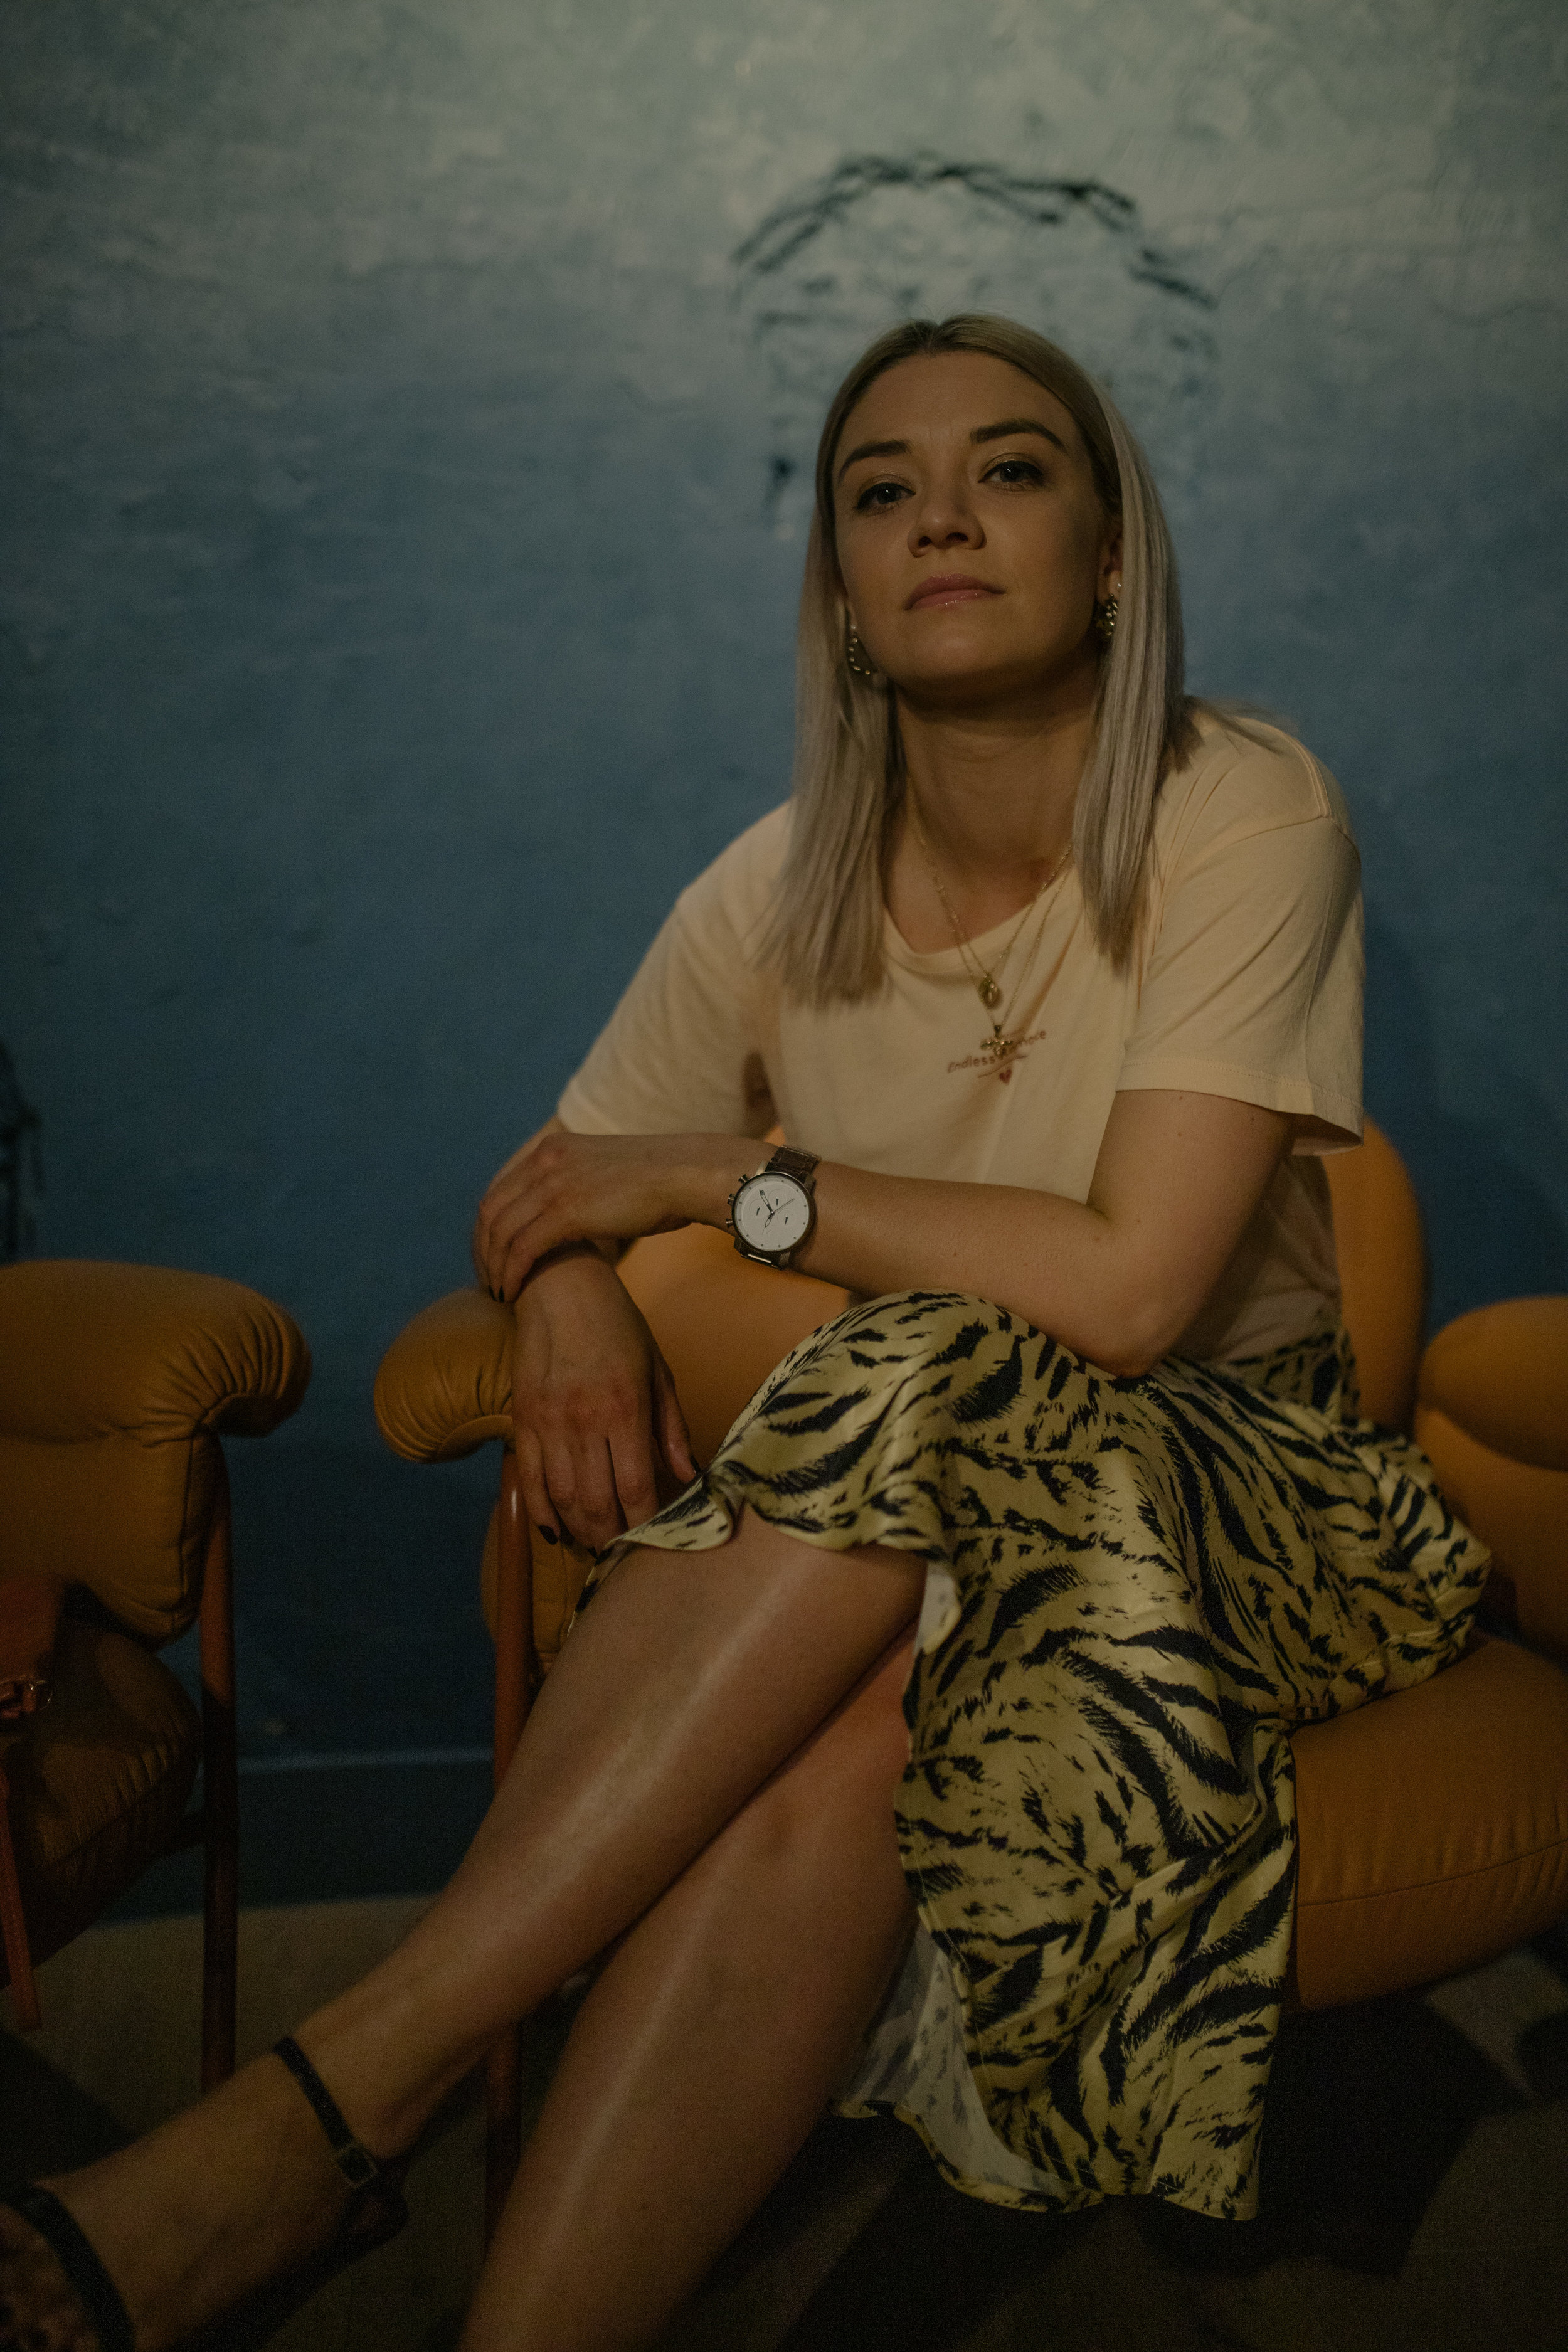 GIFTING INSTAGRAM, SCOTCH AND SODA T-SHIRT,  ANIMAL MIDI SKIRT, H&M SATIN SKIRT, NORTHERN MAGPIE, JOEY TAYLOR, TOPSHOP HEELS 4